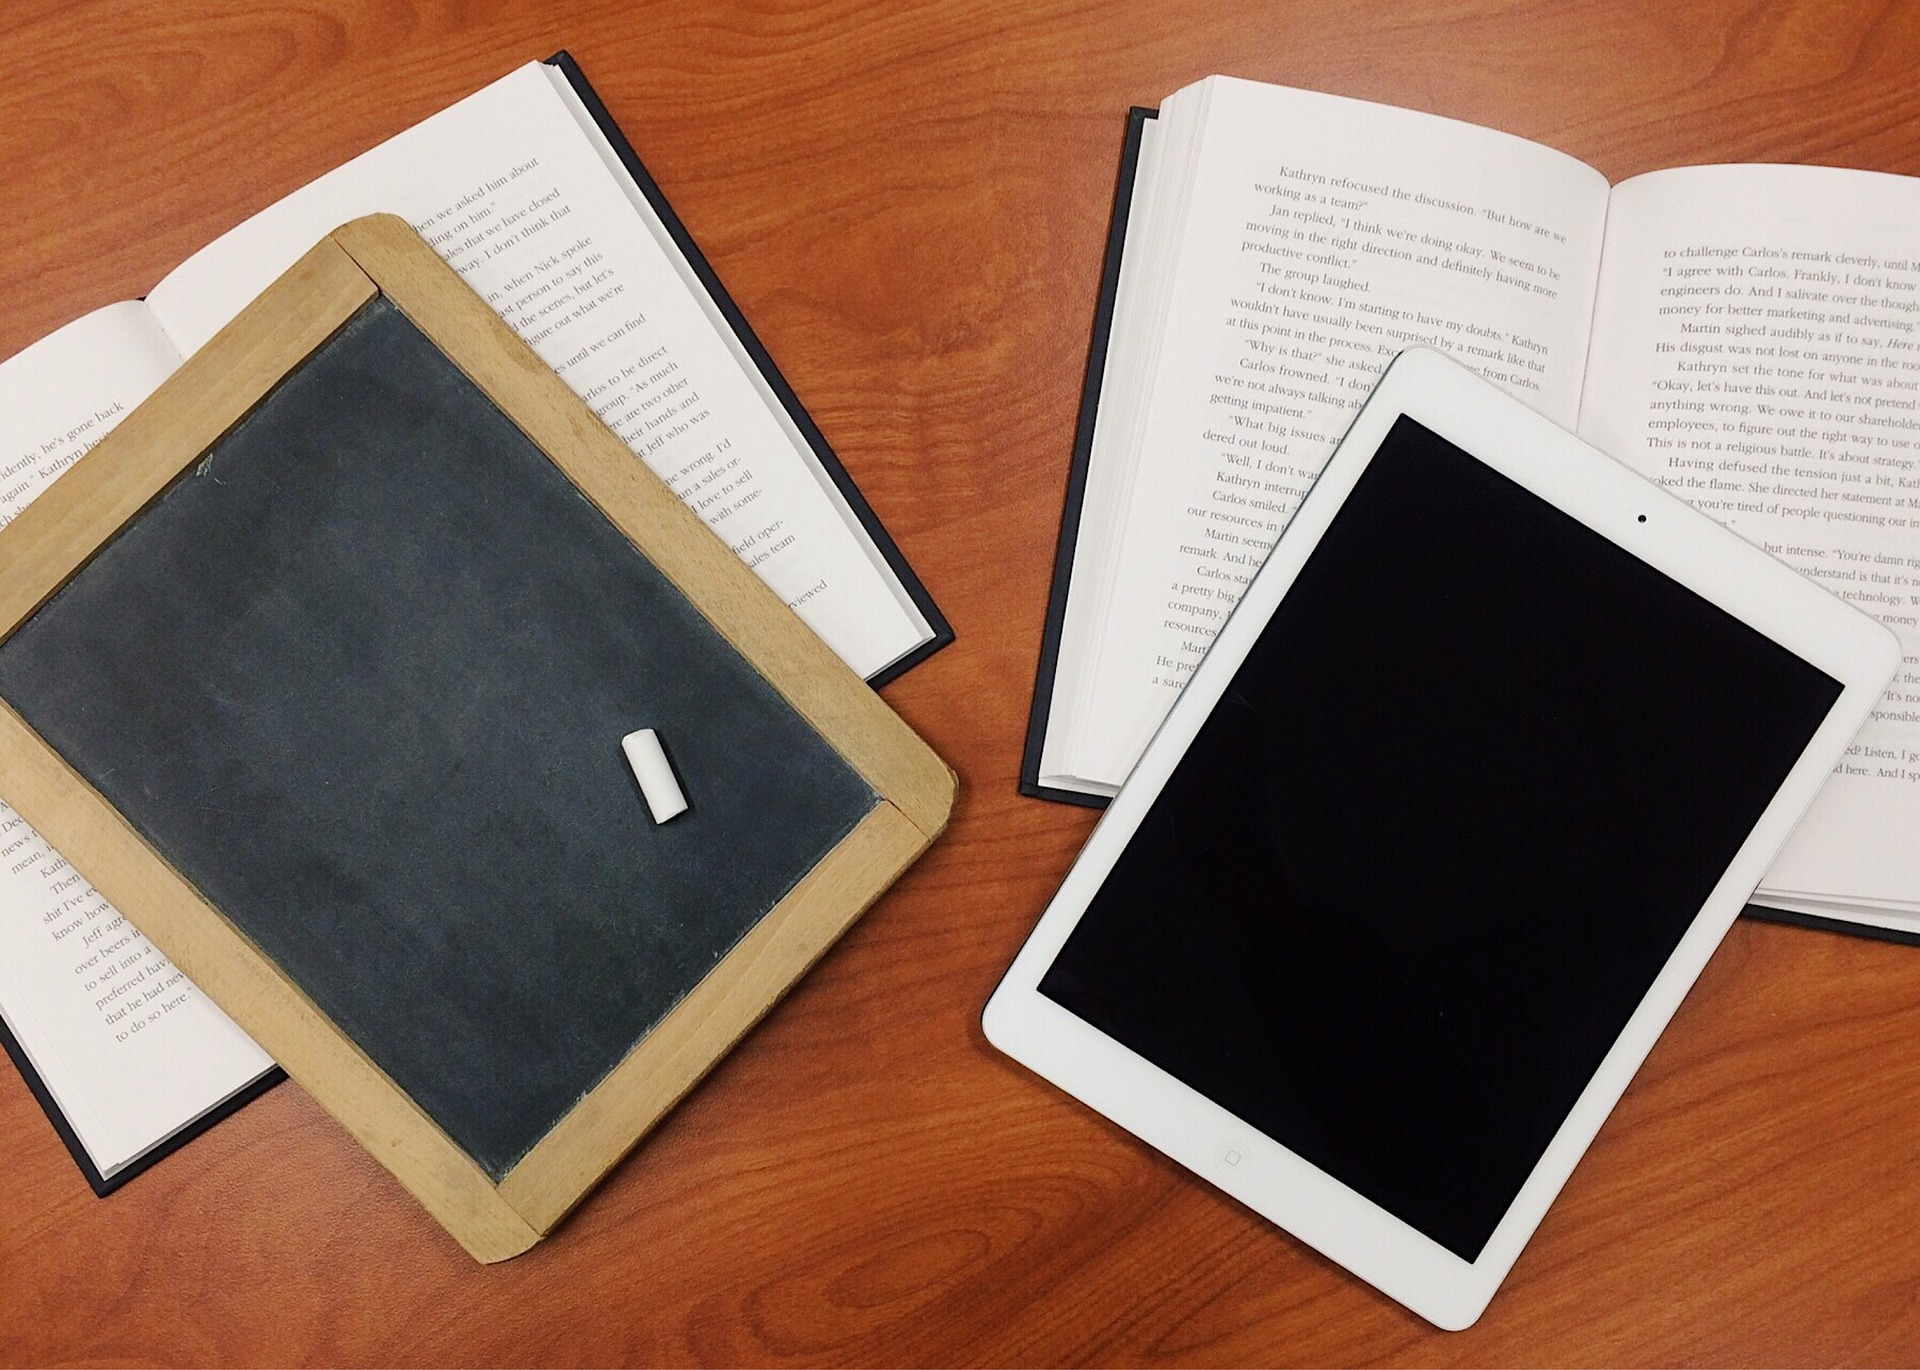 Administration Of Tablets In Schools With Mobile Device Management